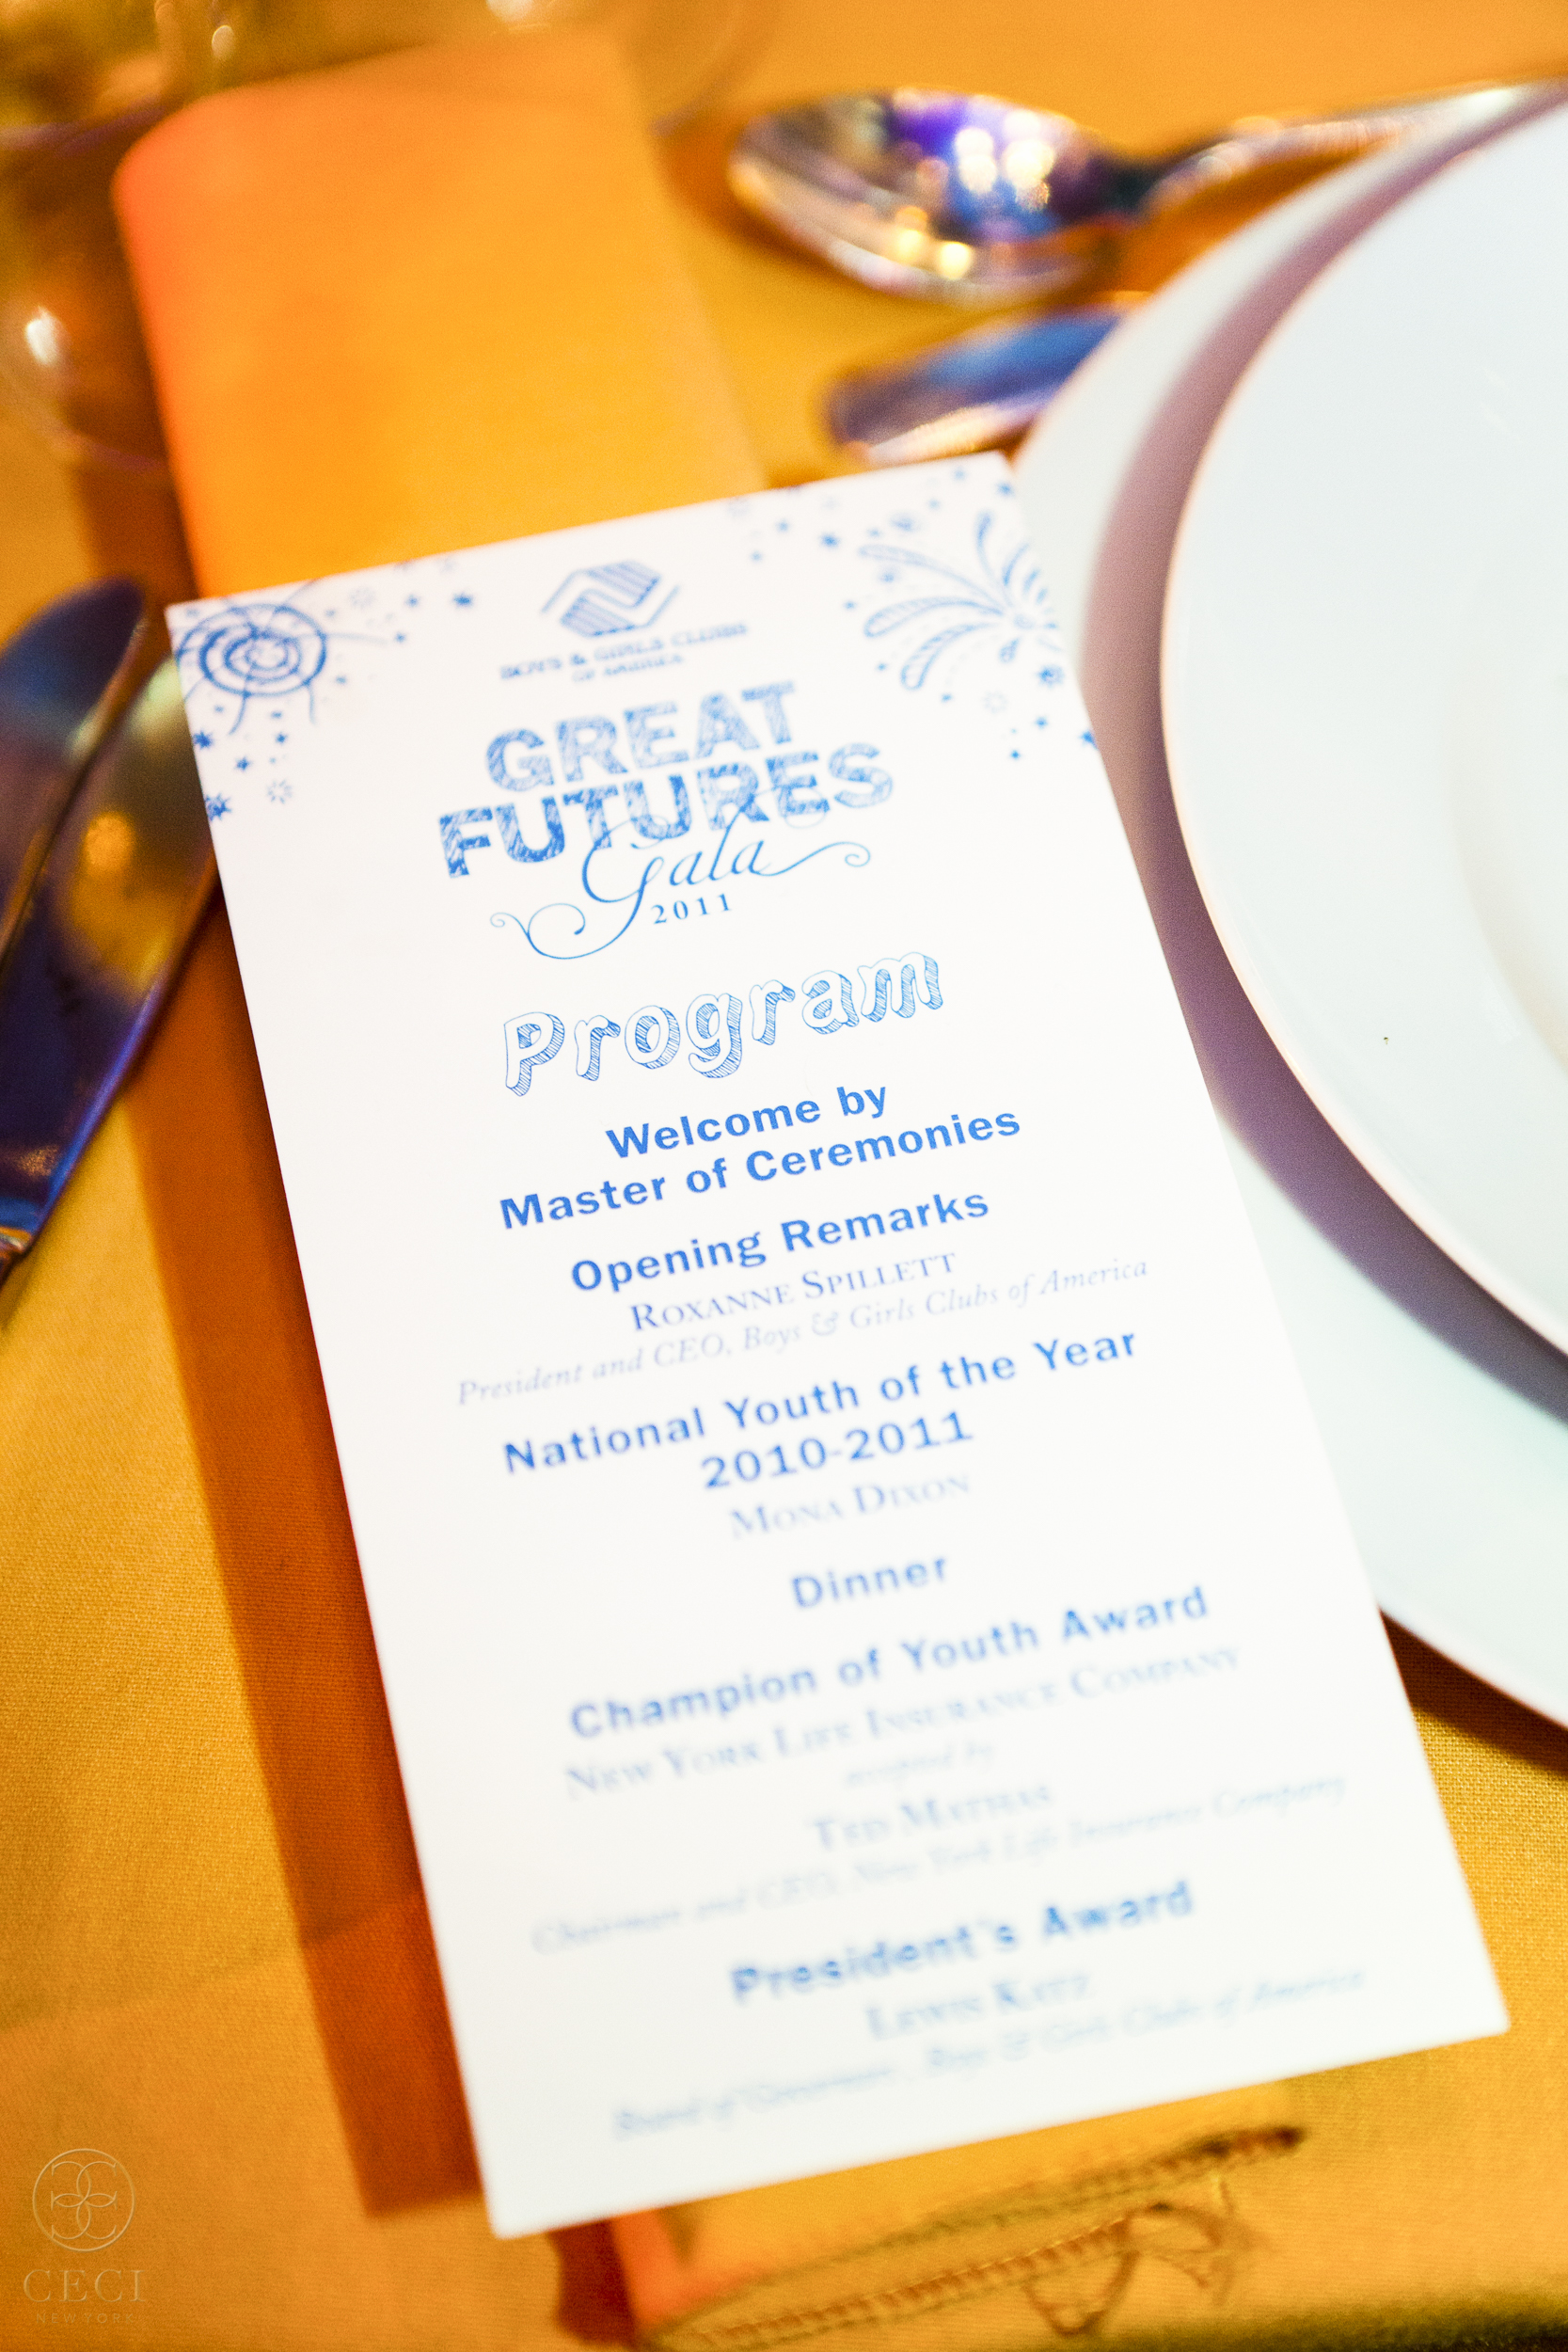 ceci-new-york-gives-back-boys-and-girls-club-of-america-great-futures-gala-2011-invitations-party-decor--2.jpg